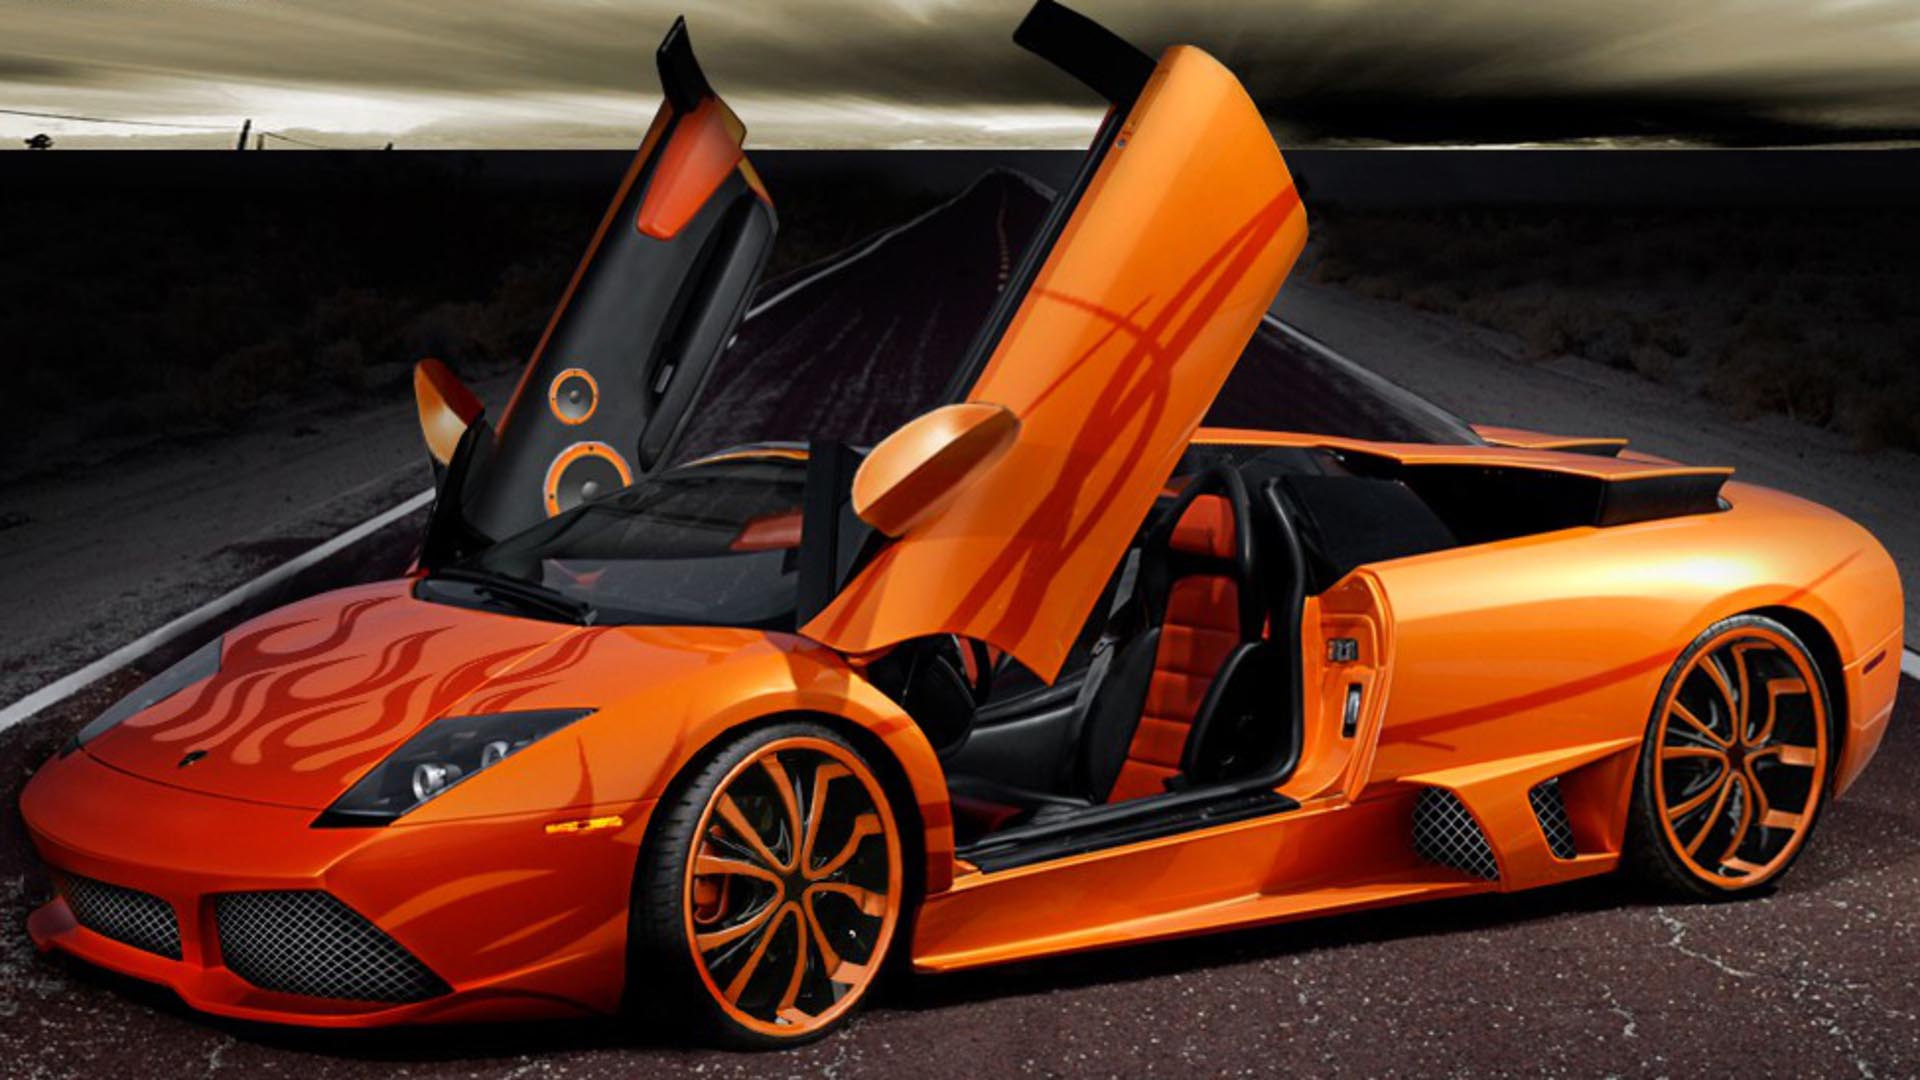 Lamborghini Desktop Wallpapers Top Free Lamborghini Desktop